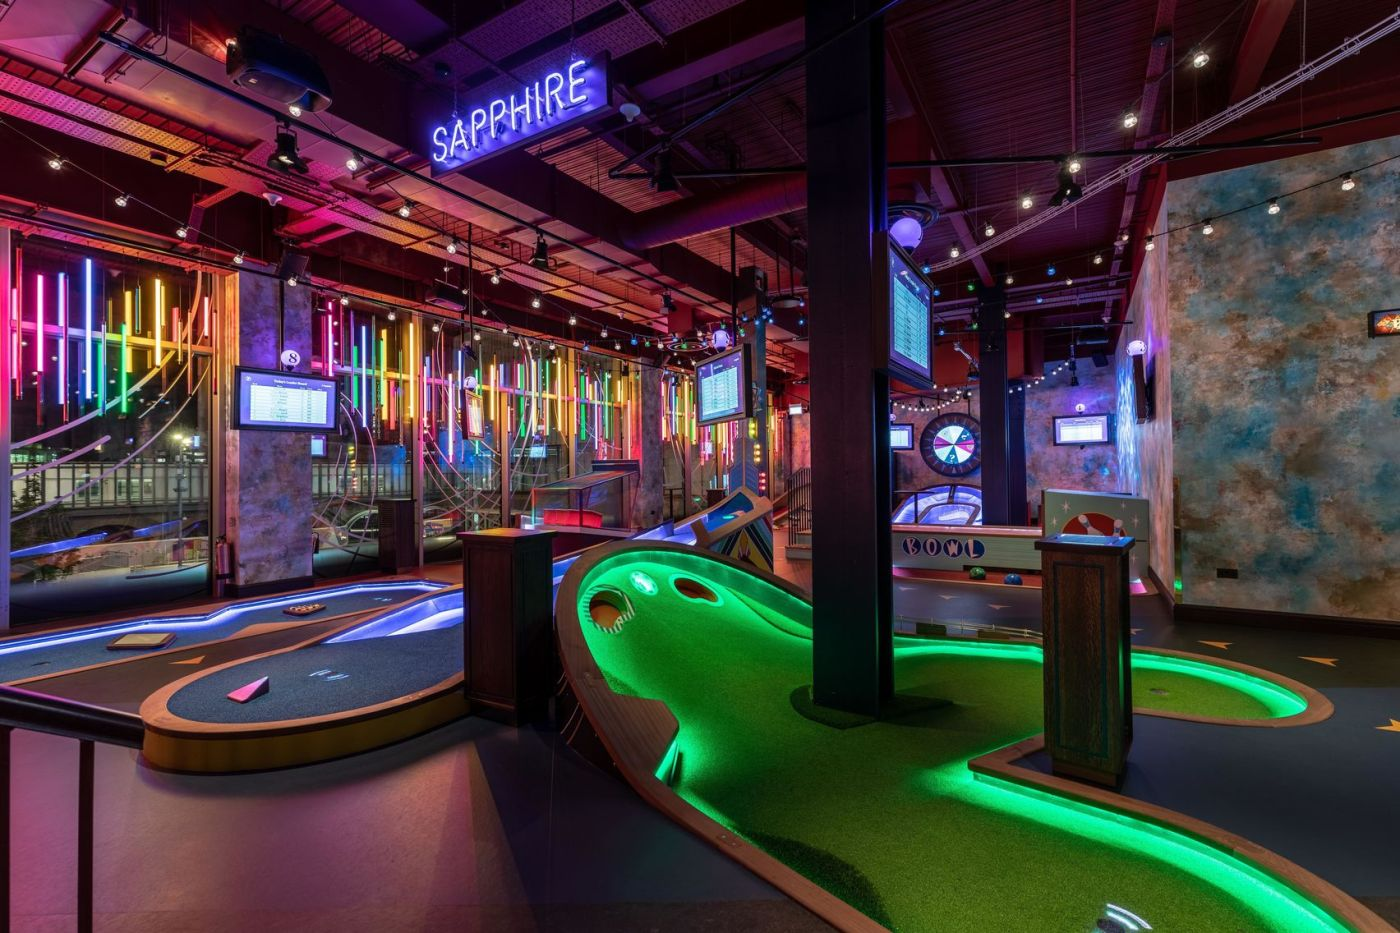 An interactive mini golf course in the city called Puttshack. You can see the different mini golf activities on the floor then the venue is decorated with bright lights.